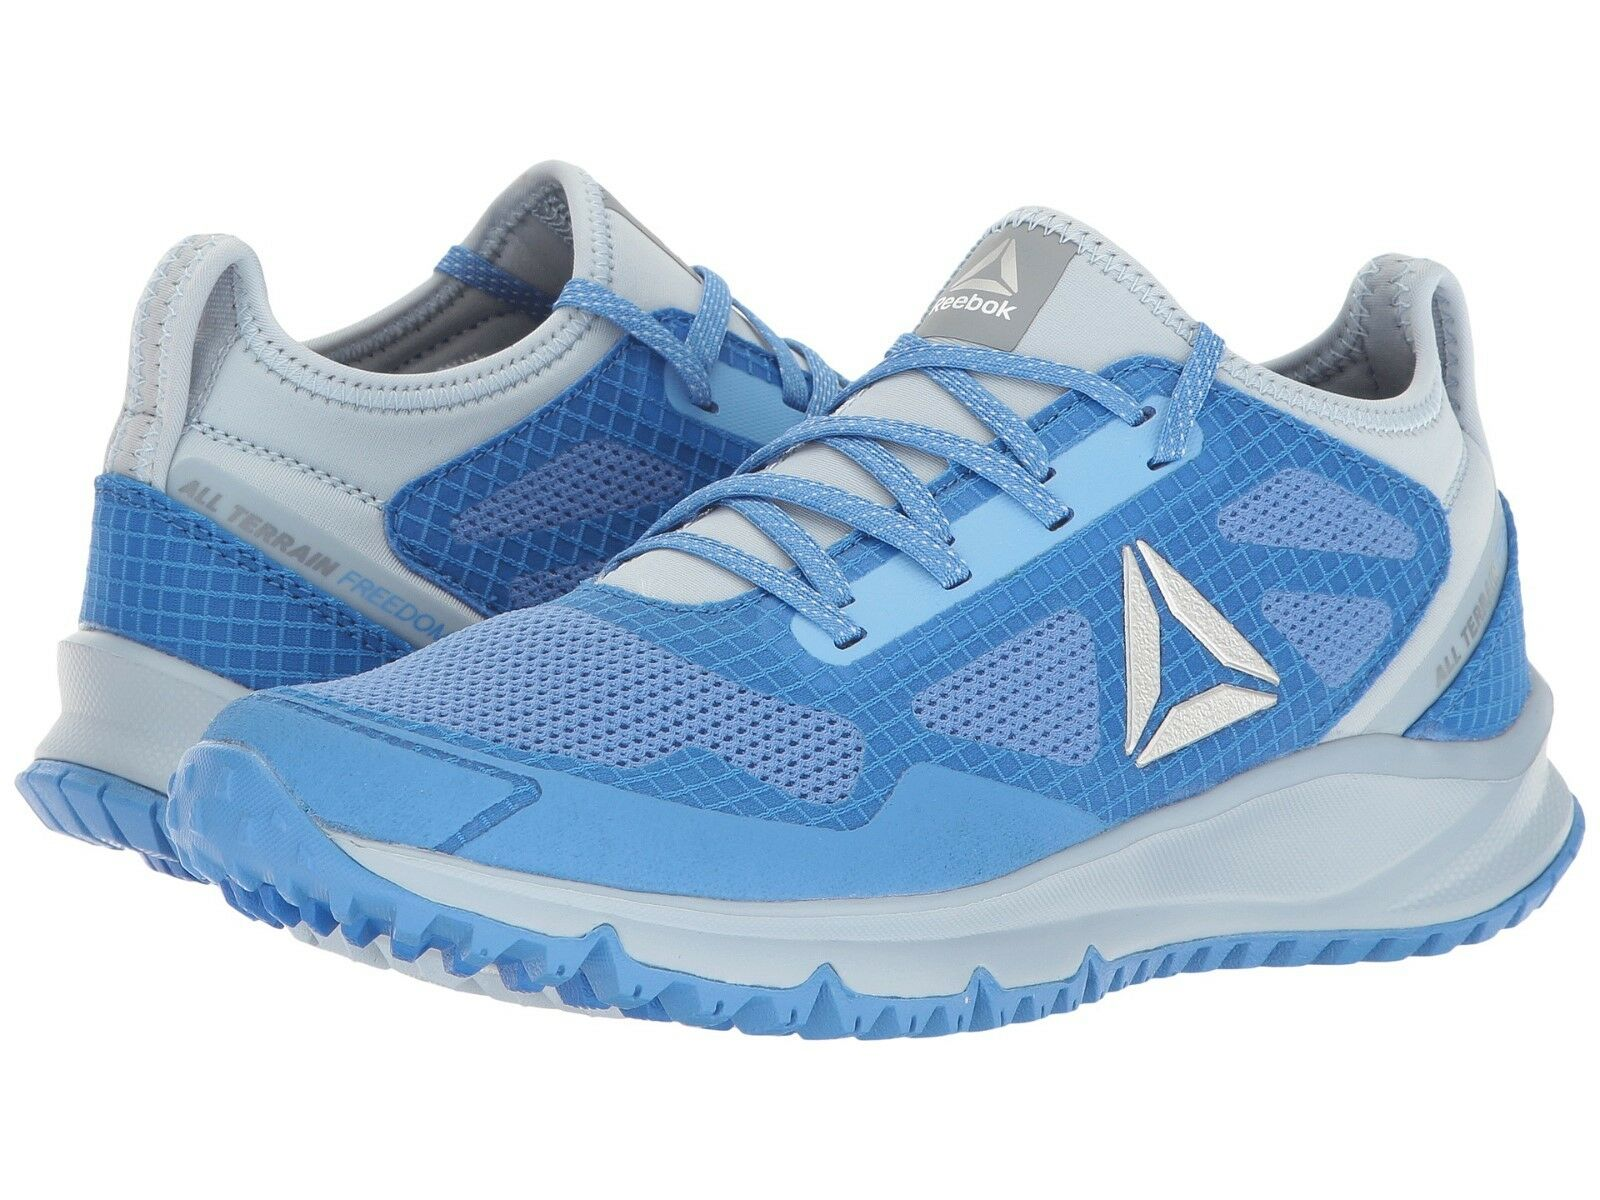 New Womens Reebok All Terrain Freedom Running shoes Size 9 bluee Grey MSRP